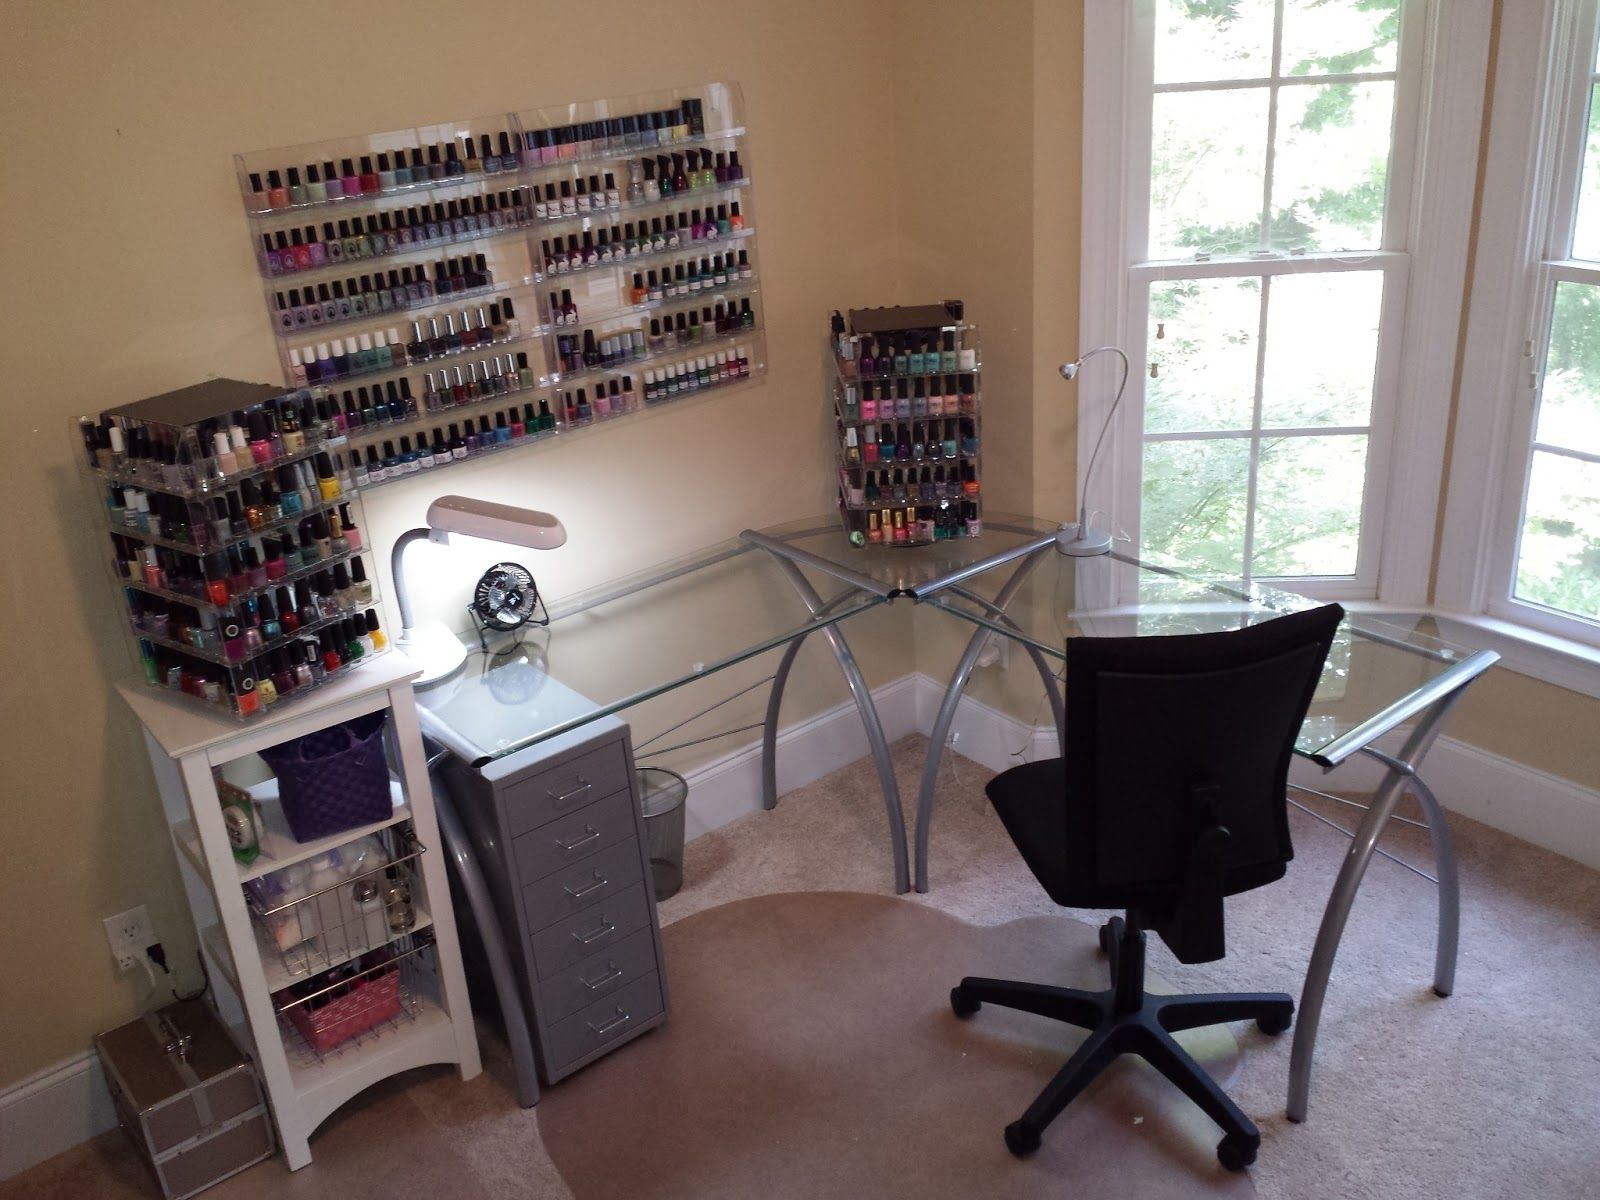 My current nail polish station at home. More than 500 polishes ...